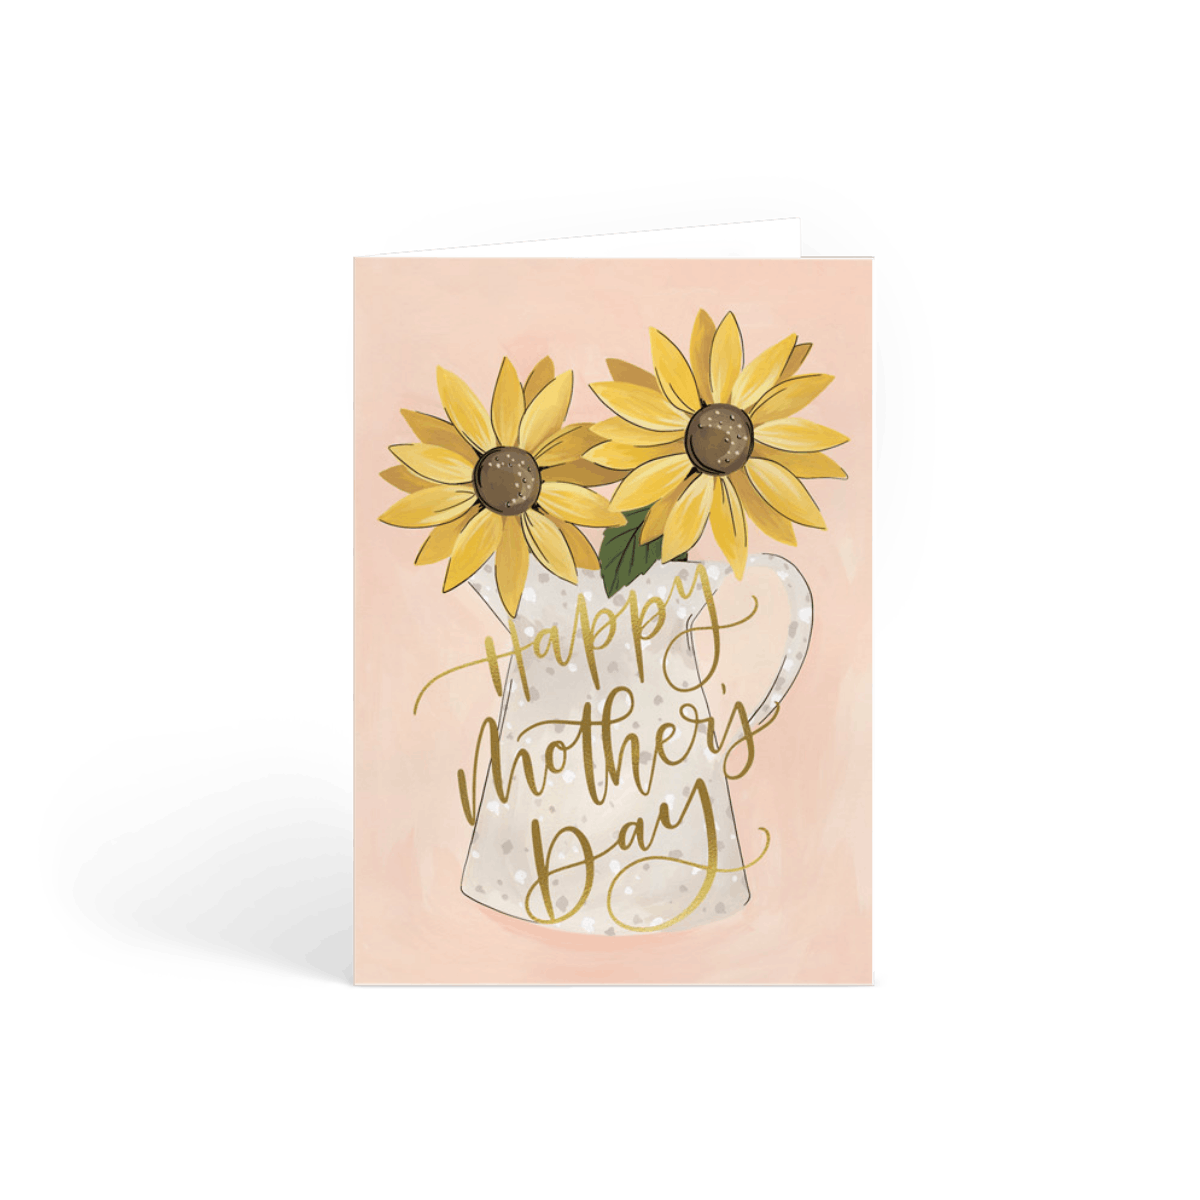 Https%3a%2f%2fwww.papier.com%2fproduct image%2f63056%2f2%2fmother s day sunflowers 14878 front 1548425207.png?ixlib=rb 1.1